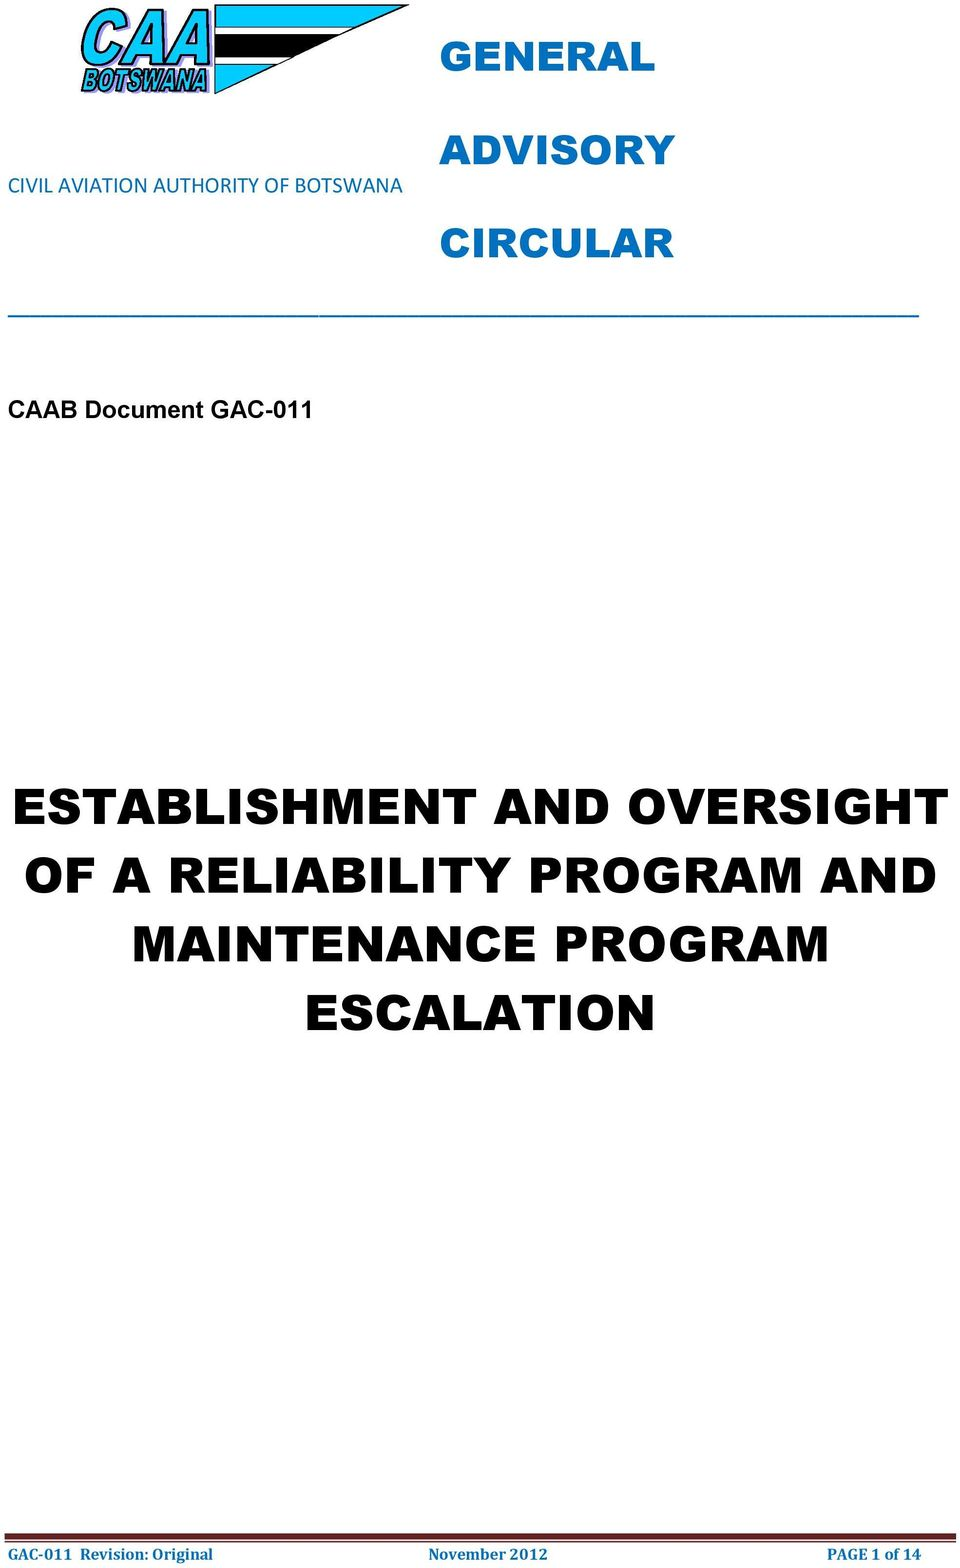 OVERSIGHT OF A RELIABILITY PROGRAM AND MAINTENANCE